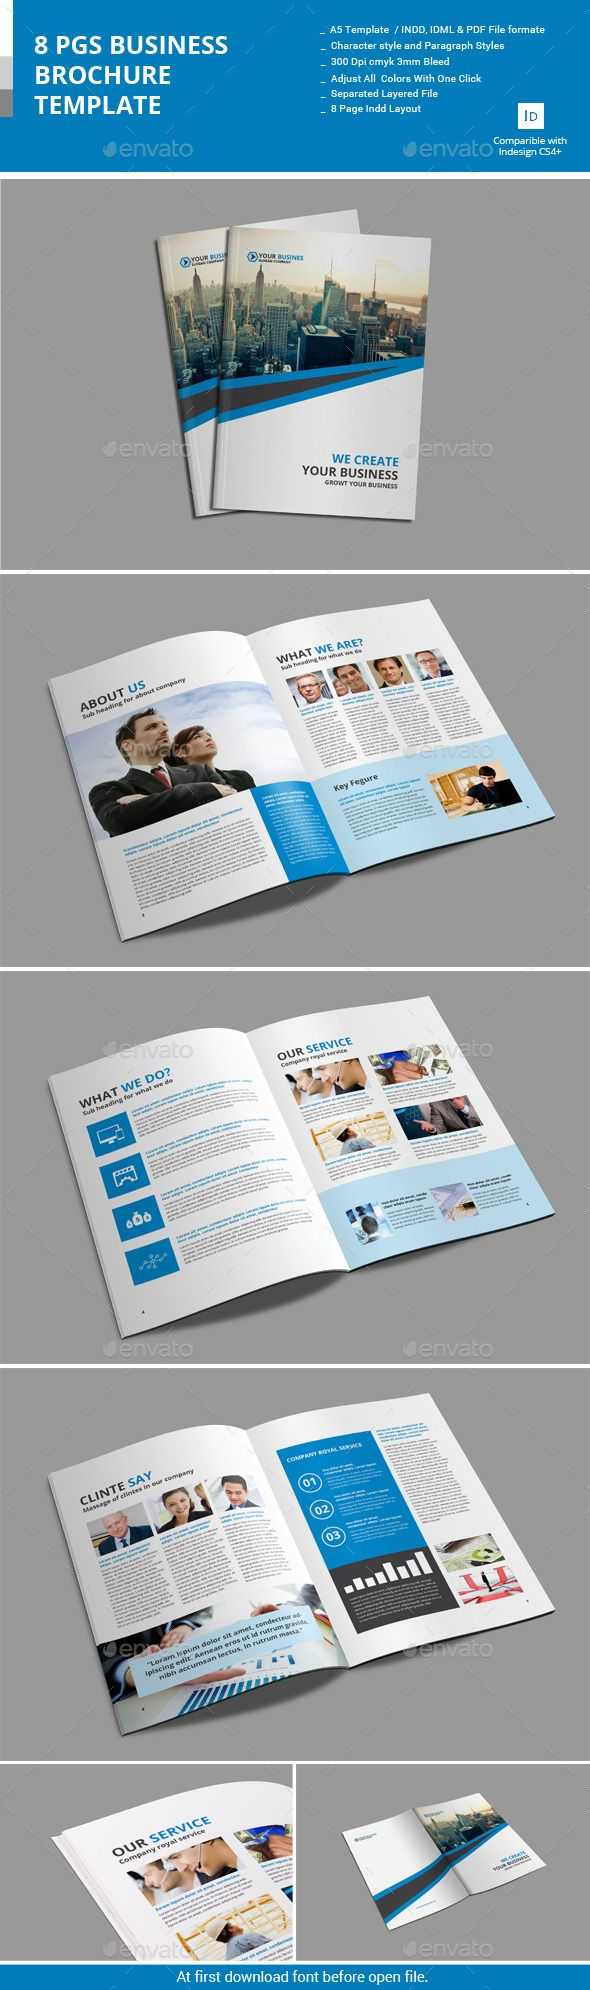 Pretty 1 Year Experienced Software Developer Resume Sample Thin 10 Best Resume Designs Shaped 1099 Template Word 11 Vuze Search Templates Youthful 1st Job Resume Template Dark2 Page Resume Format 20 Best Images About Template   11x17 Booklet Brochure On ..